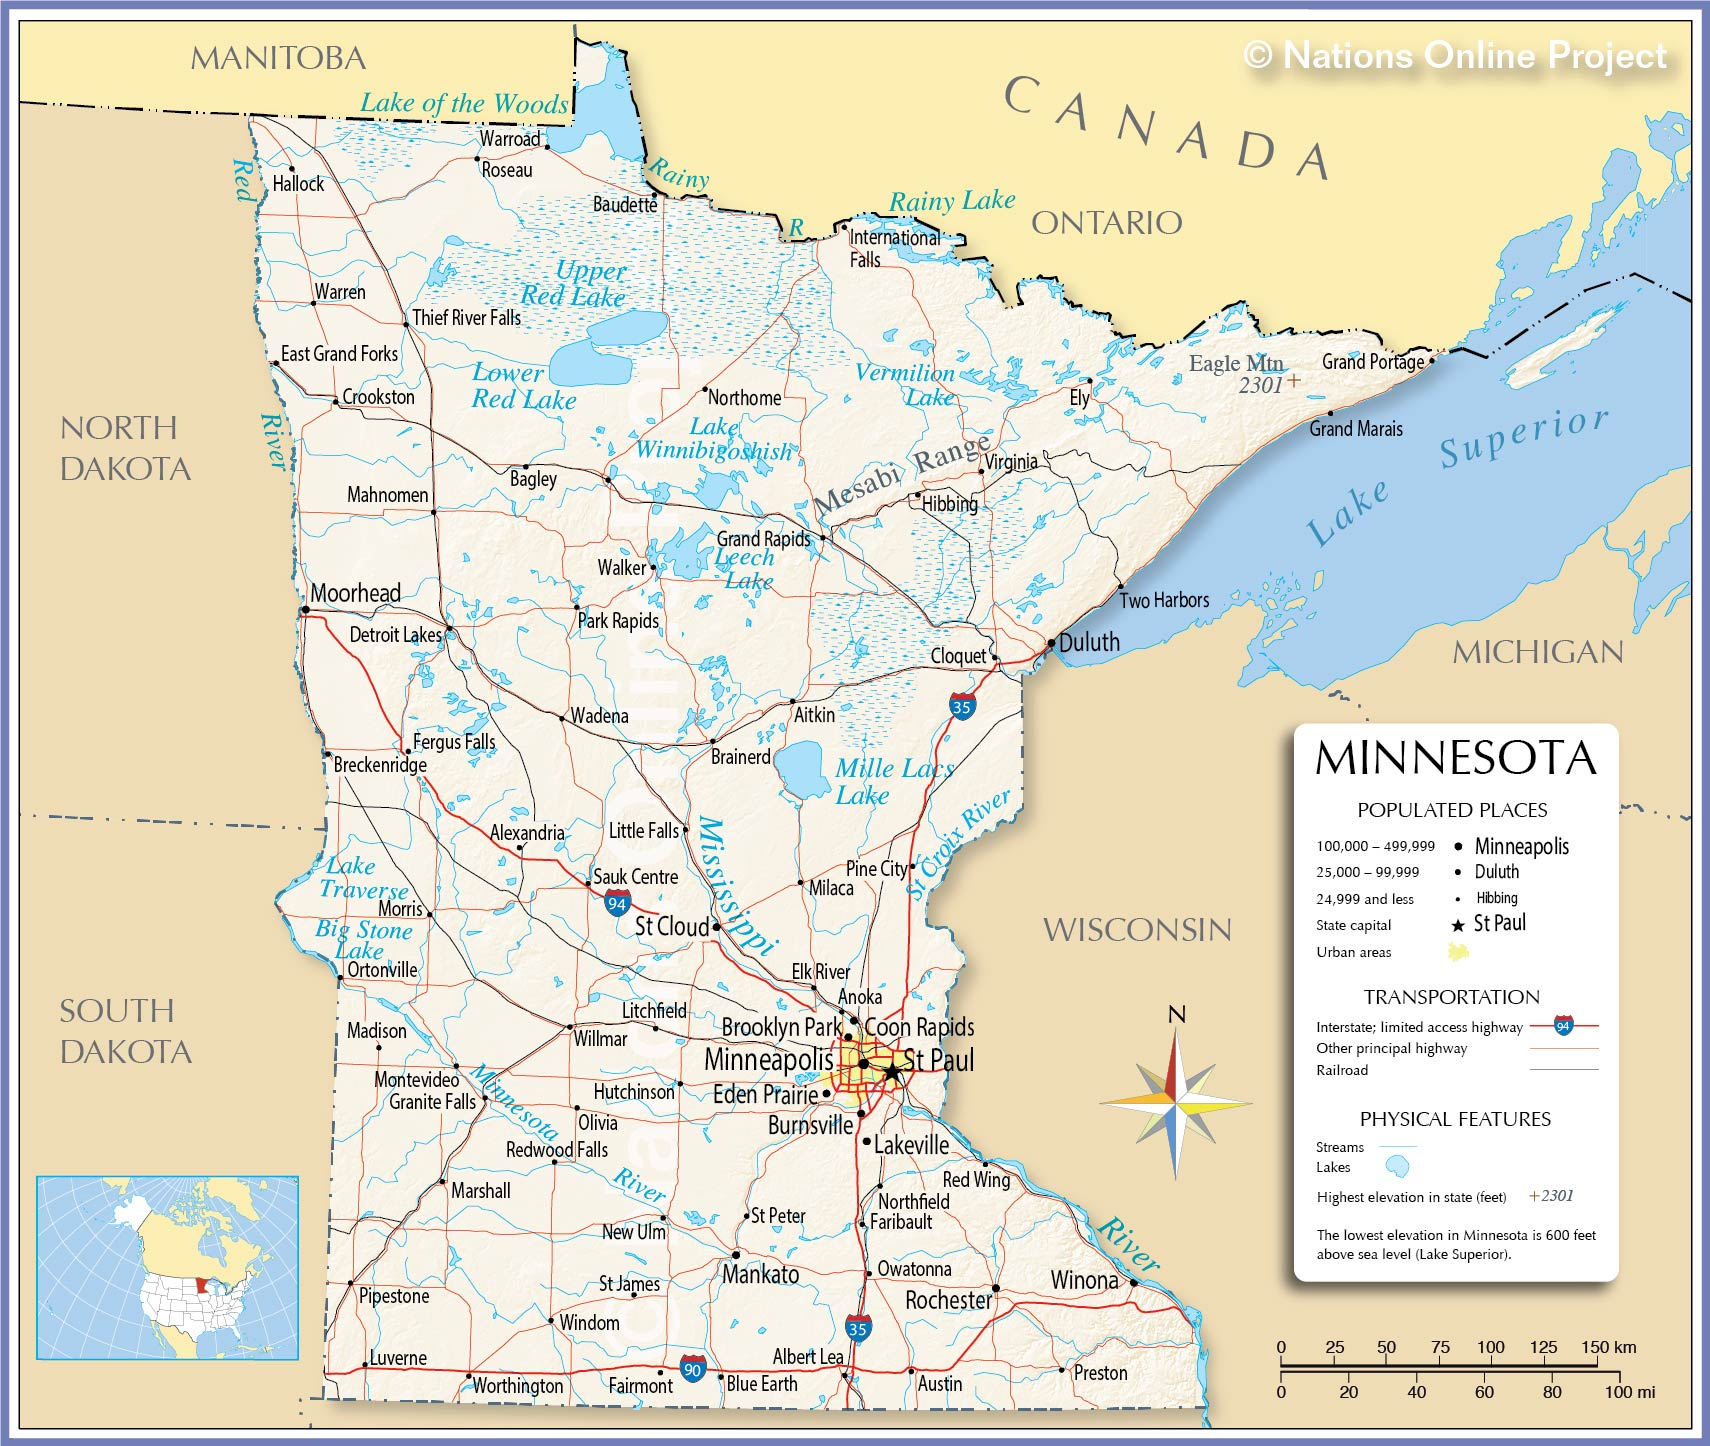 Reference Map Of Minnesota USA Nations Online Project - Political map of minnesota